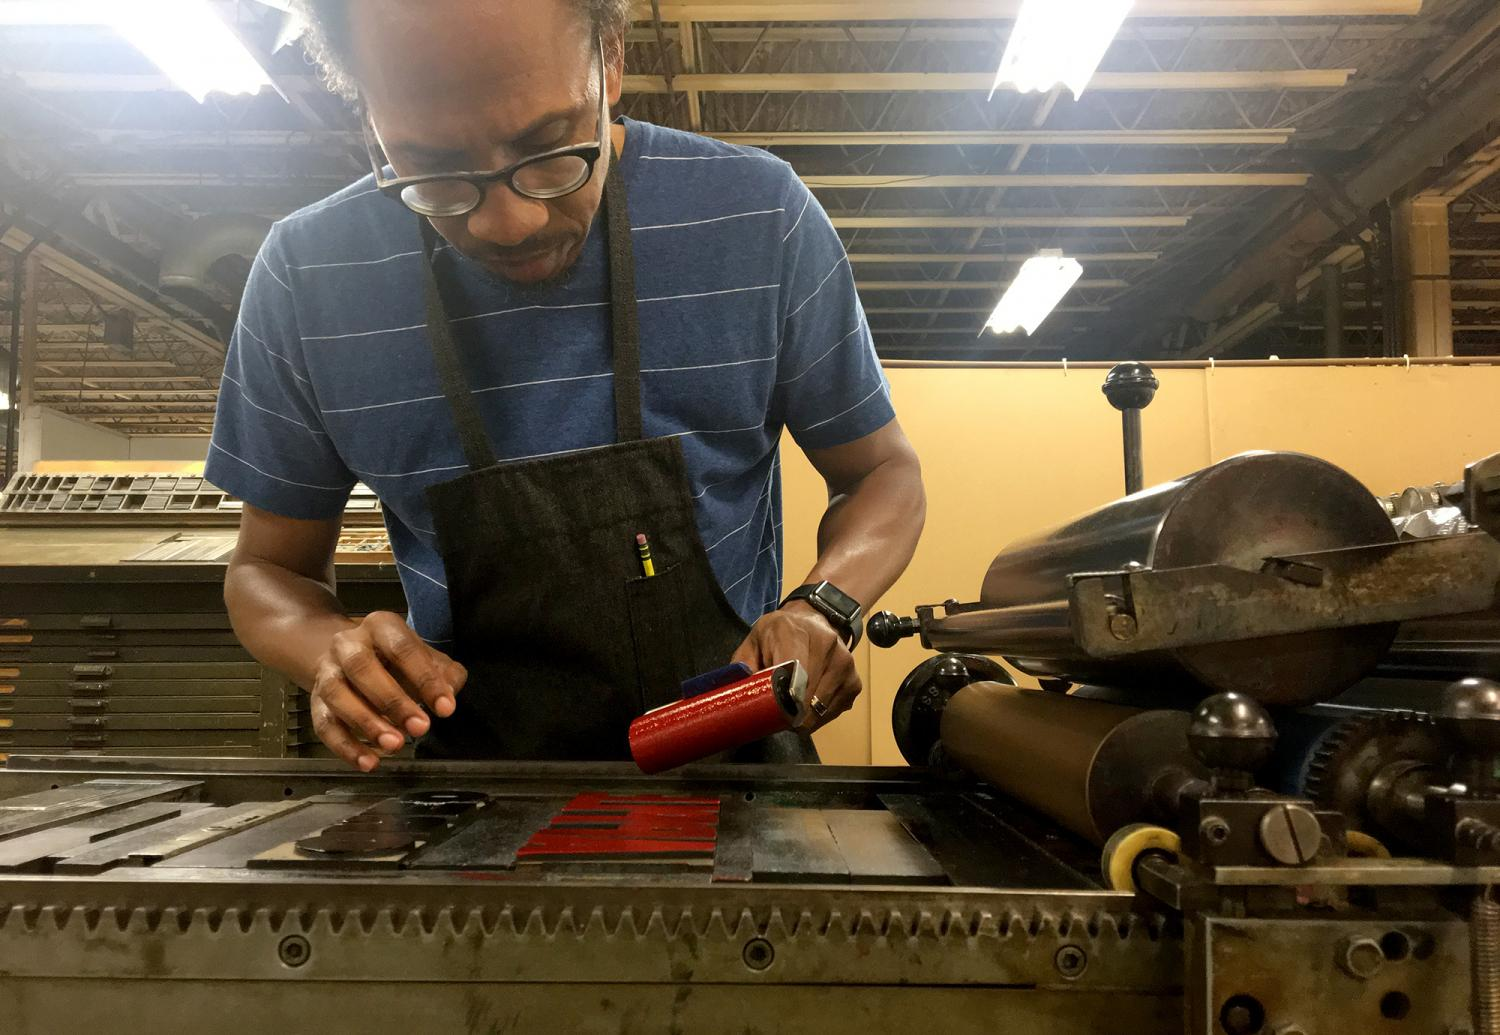 a man, artist Ben Blount, rolling ink onto a letterpress printing machine in a workshop filled with equipment. He is dressed in a printer's apron.